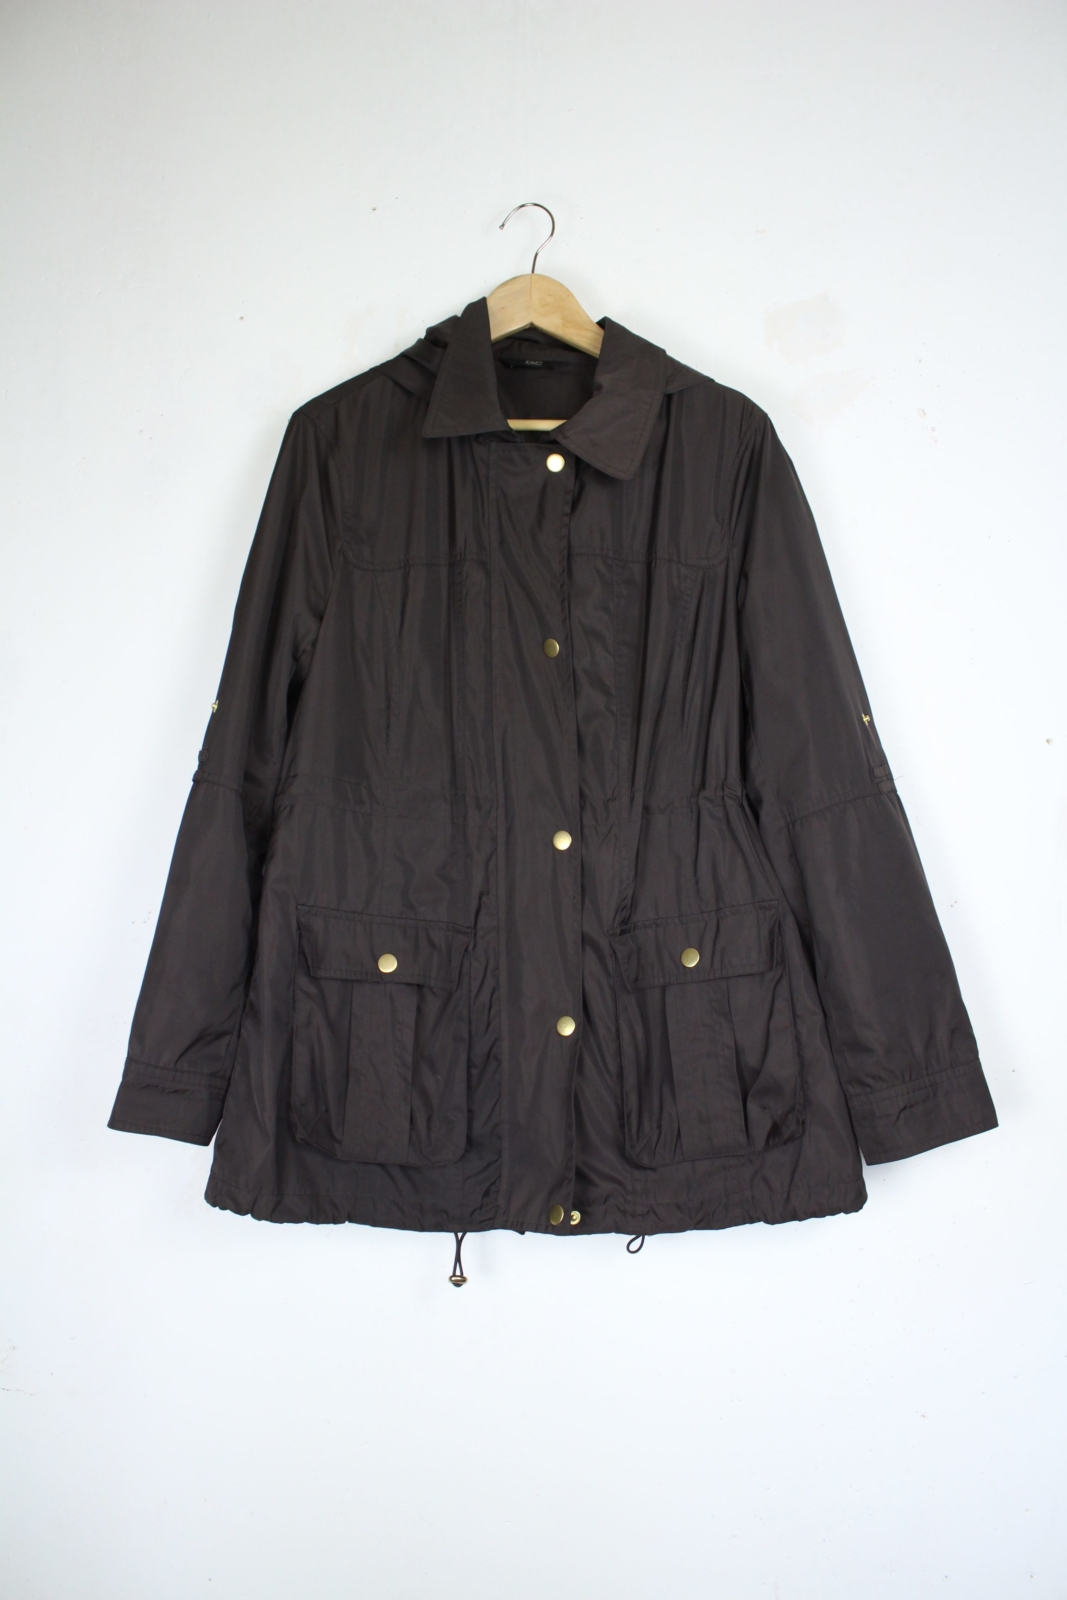 Second-hand Clothing - Sale, Women, Coats & Jackets, Second-Hand Clothing